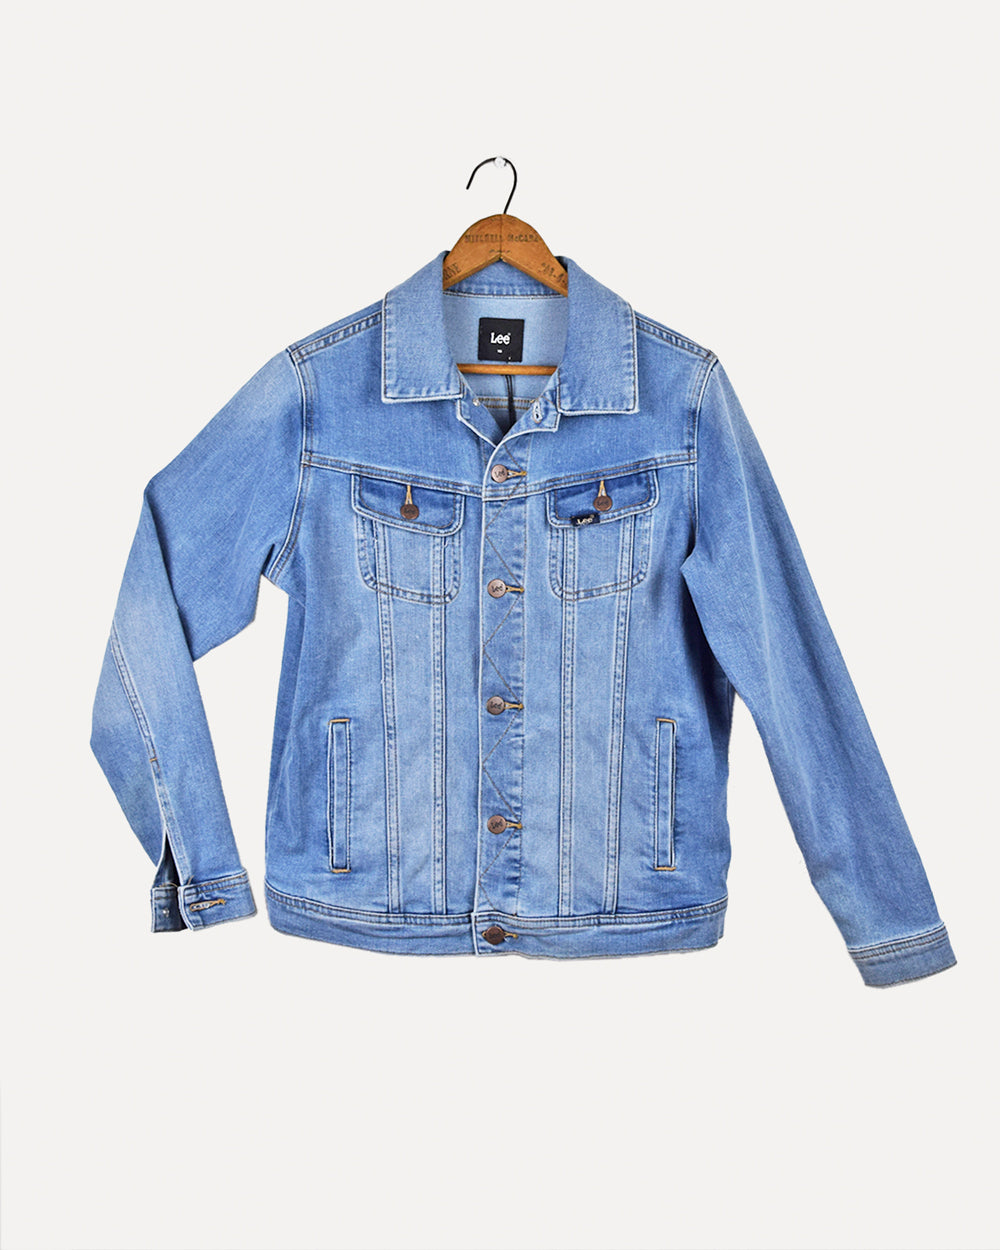 Lee Boyfriend Denim Jacket (NEW!) | 10